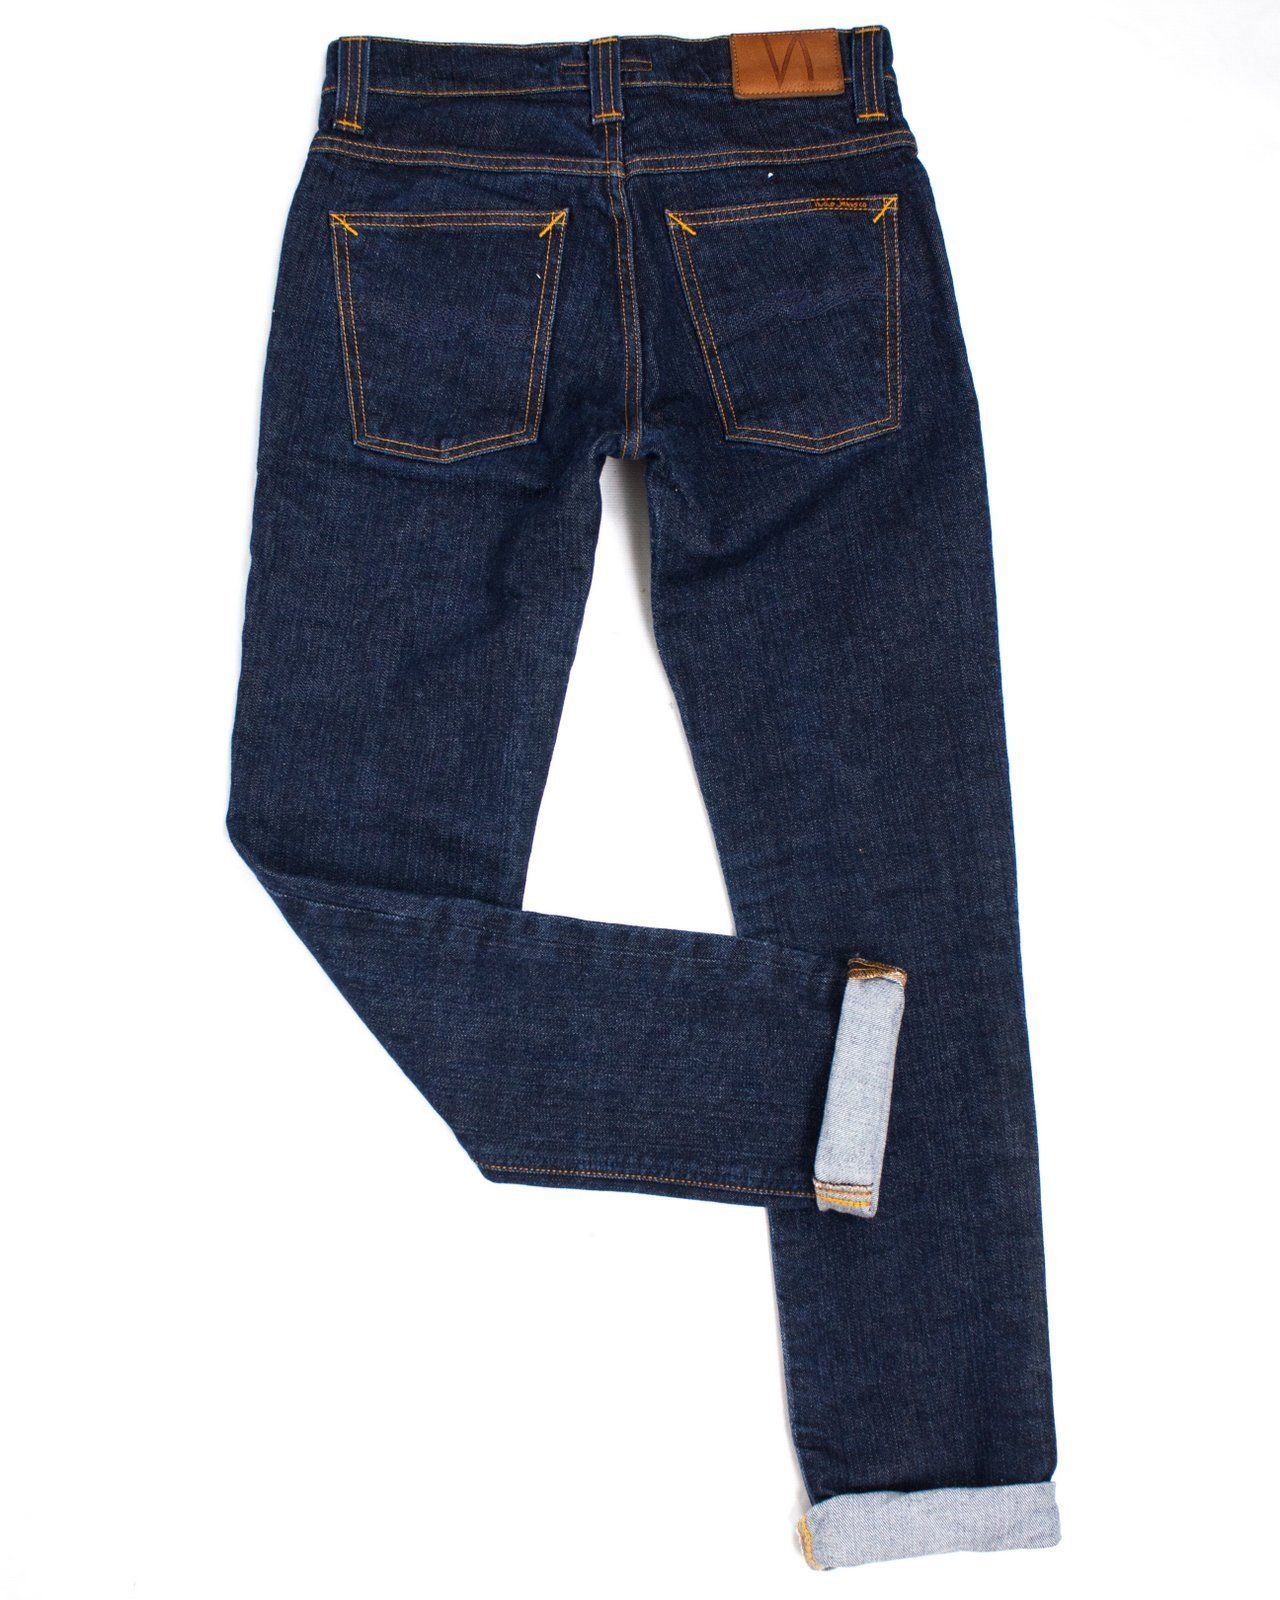 NUDIE Organic Cotton Jeans, SIZE 28/30 - secondfirst